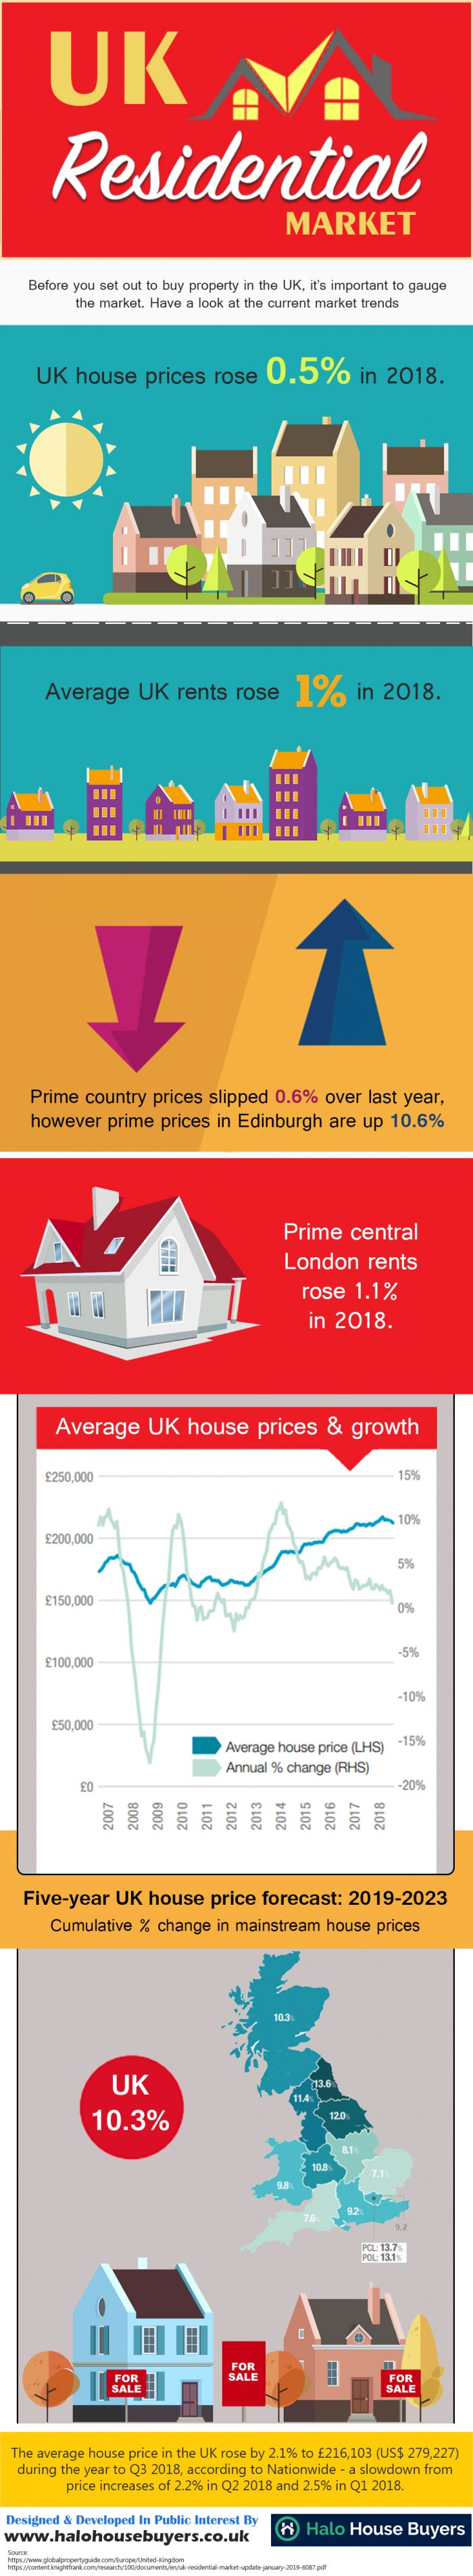 UK RESIDENTIAL MARKET